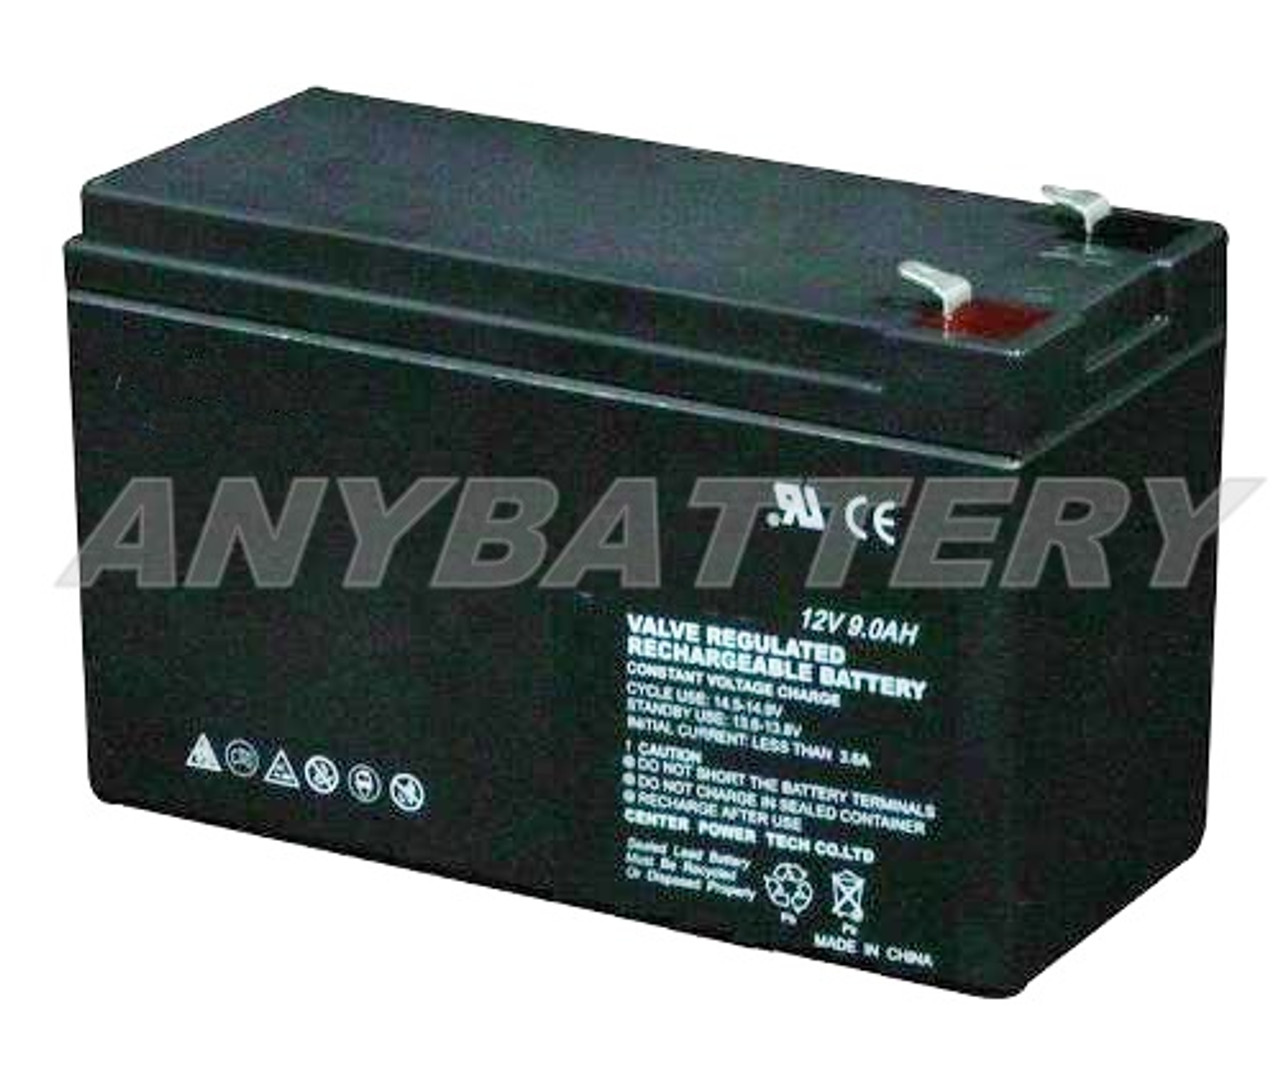 APC APCRBC110, BE550G, BE550G-CN, BE550G-LM, BE550R, BE550R-CN, BE650BB, BE650BB-CN, BE650G, BE650G1, BE650R, BE650R-CN, BE650Y-IN, BE700-AZ, BE700-CP, BE700-FR, BE700-GR, BE700-IT, BE700-KR, BE700-RS, BE700-SP, BE700-UK, BE725BB, BE750G, BE750G-CN, BK650-AS, BK650EI, BN600, BN600G, BP700UC, BR650CI, BR650CI-AS, BR650CI-RS, BR700G, DL650T, DL725VT, LS700, RBC17, Eaton 5SC500